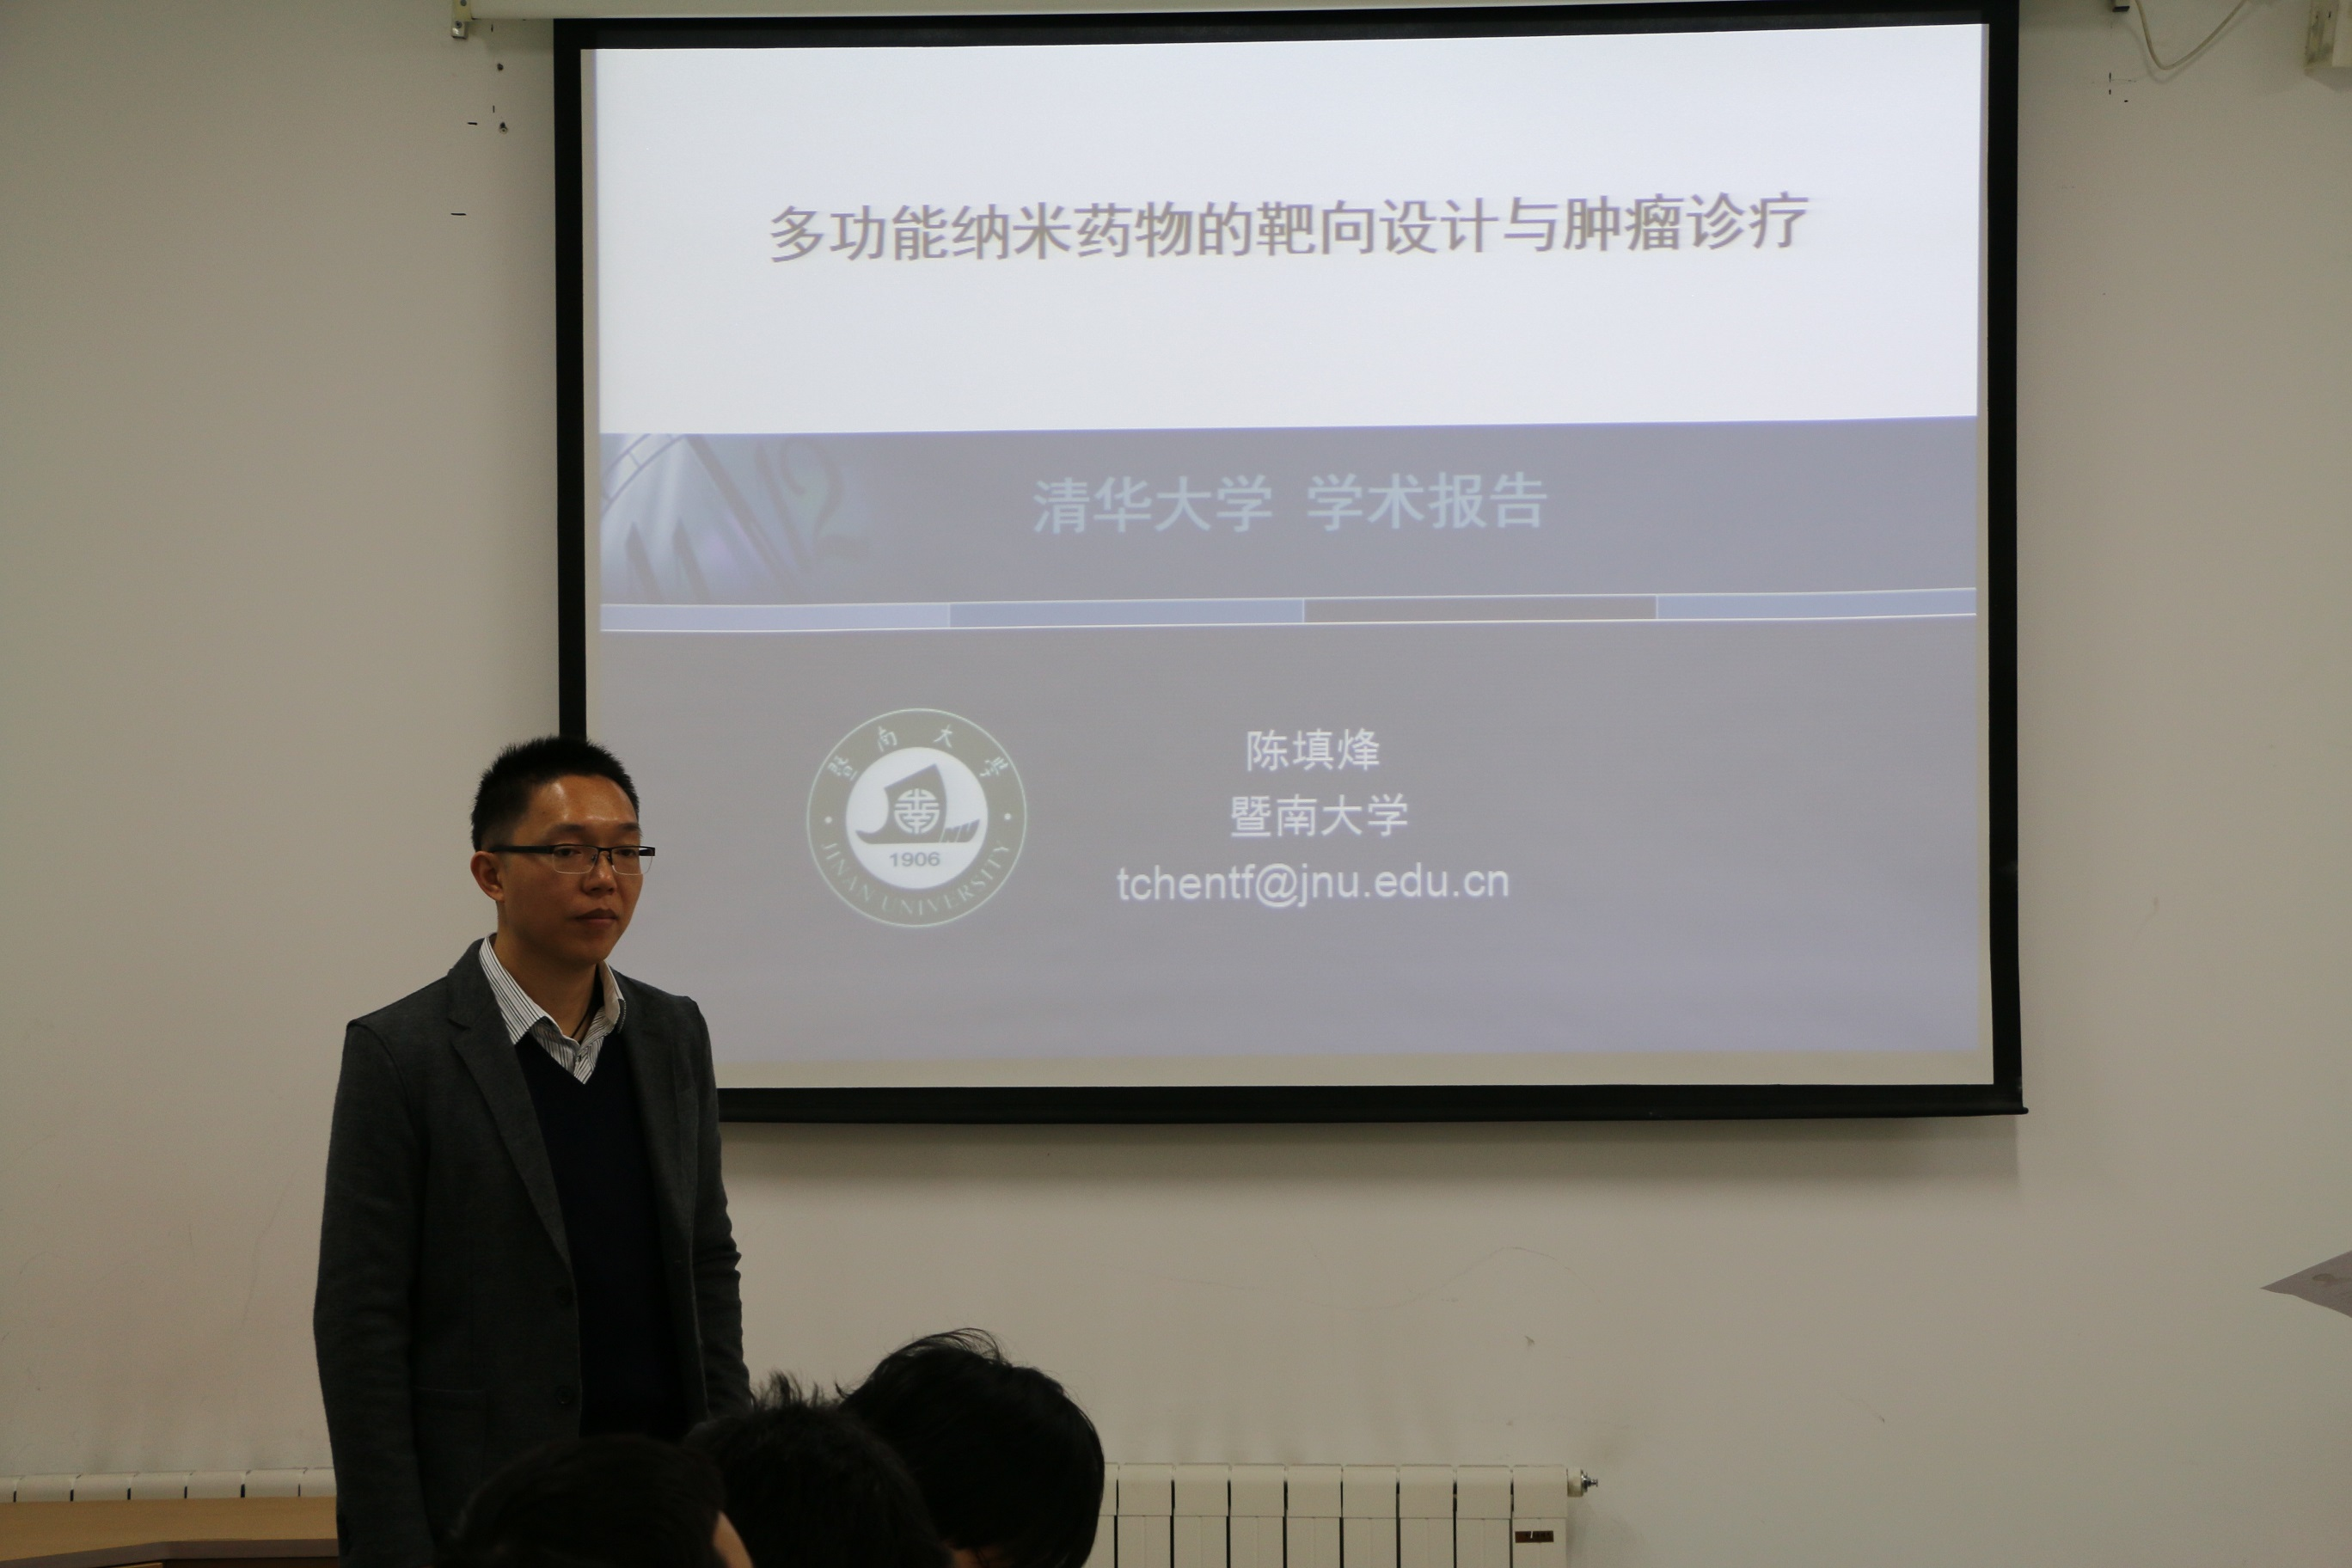 Prof. Tianfeng Chen visited Tsinghua University and gave a lecture